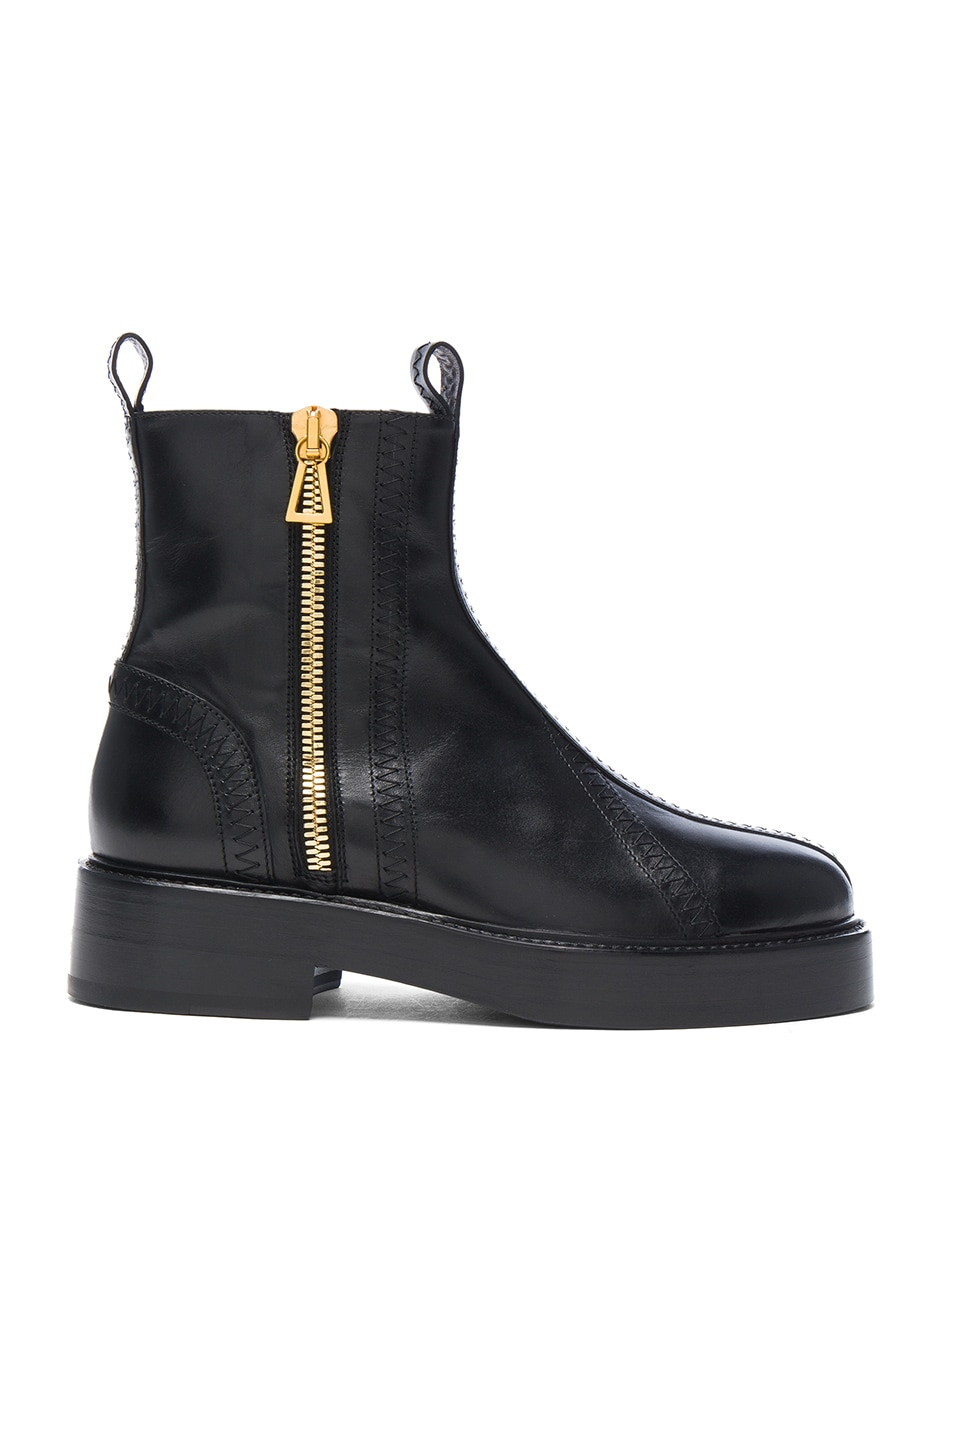 Image 1 of Ellery Leather Boots in Black & Gold